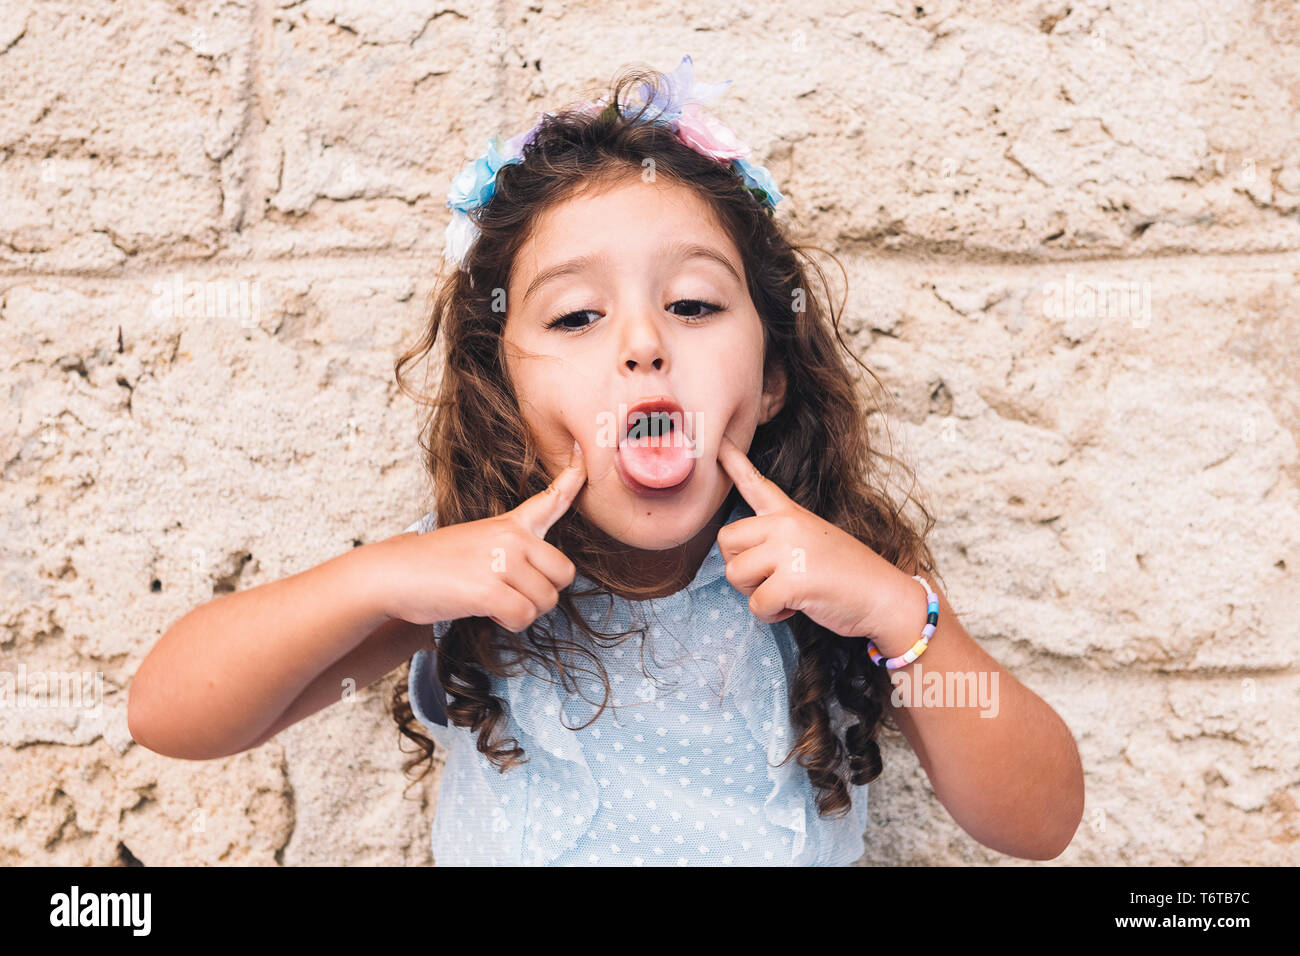 little girl making fun with her tongue, is in front of a stone wall and wears a blue dress and a flower headband - Stock Image